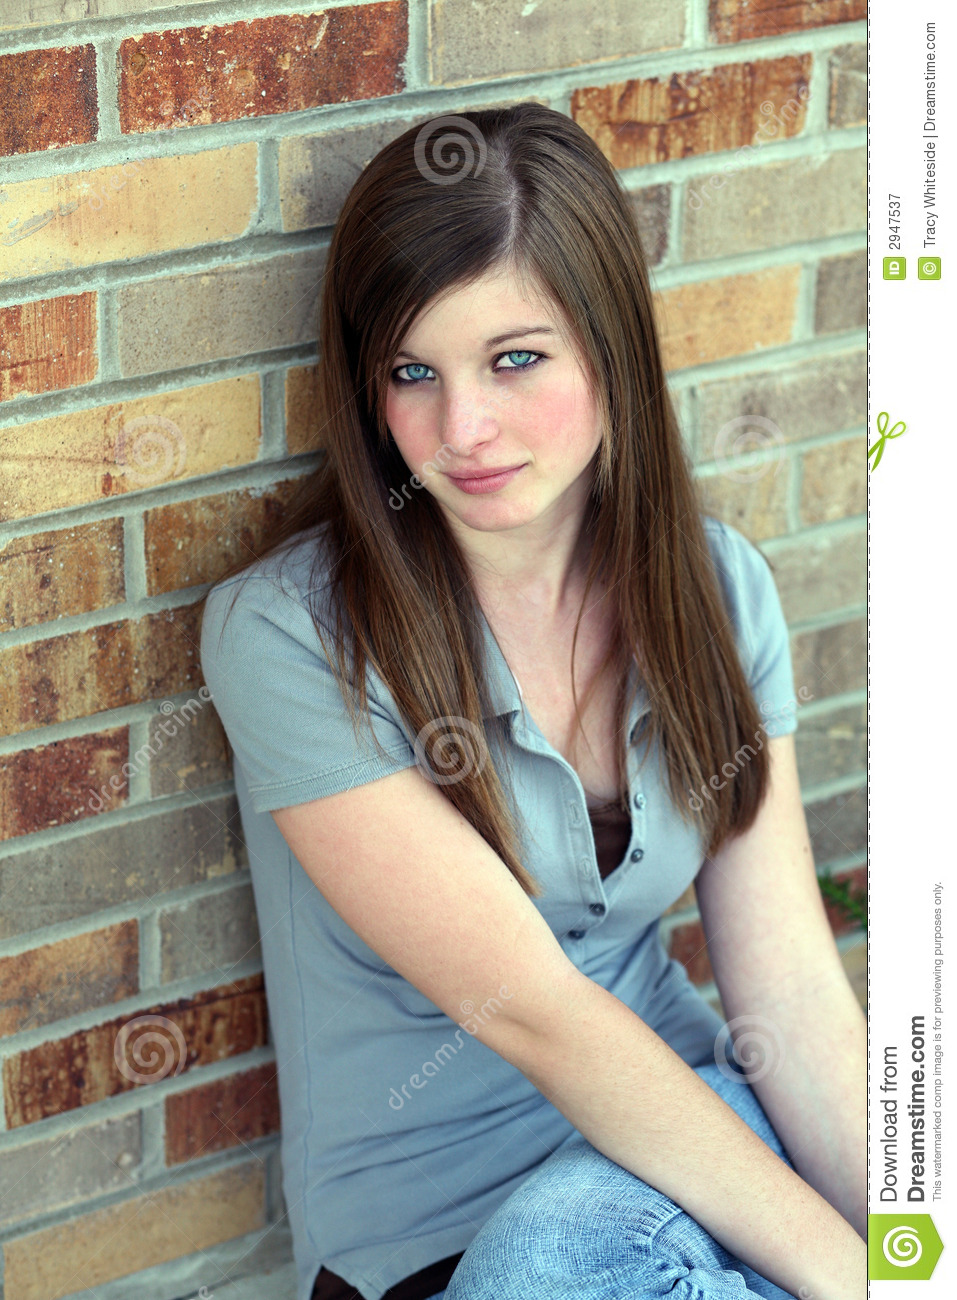 Download Foto Model Model Girl Stock Image Image Of Smile Feminine Preteen 2947537